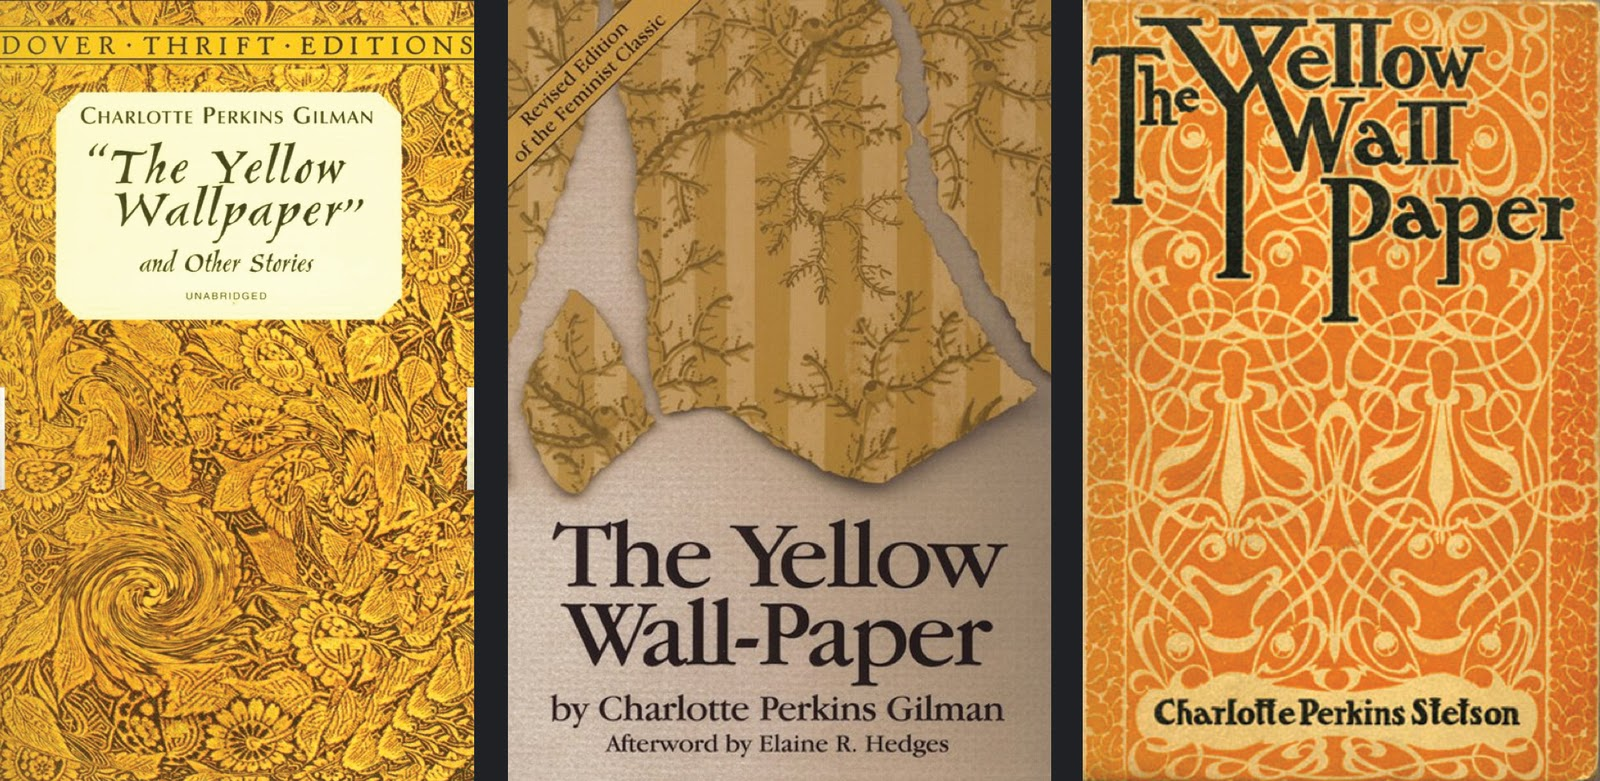 The Yellow Wallpaper By Charlotte Perkins Gilman The Yellow Party 1600x781